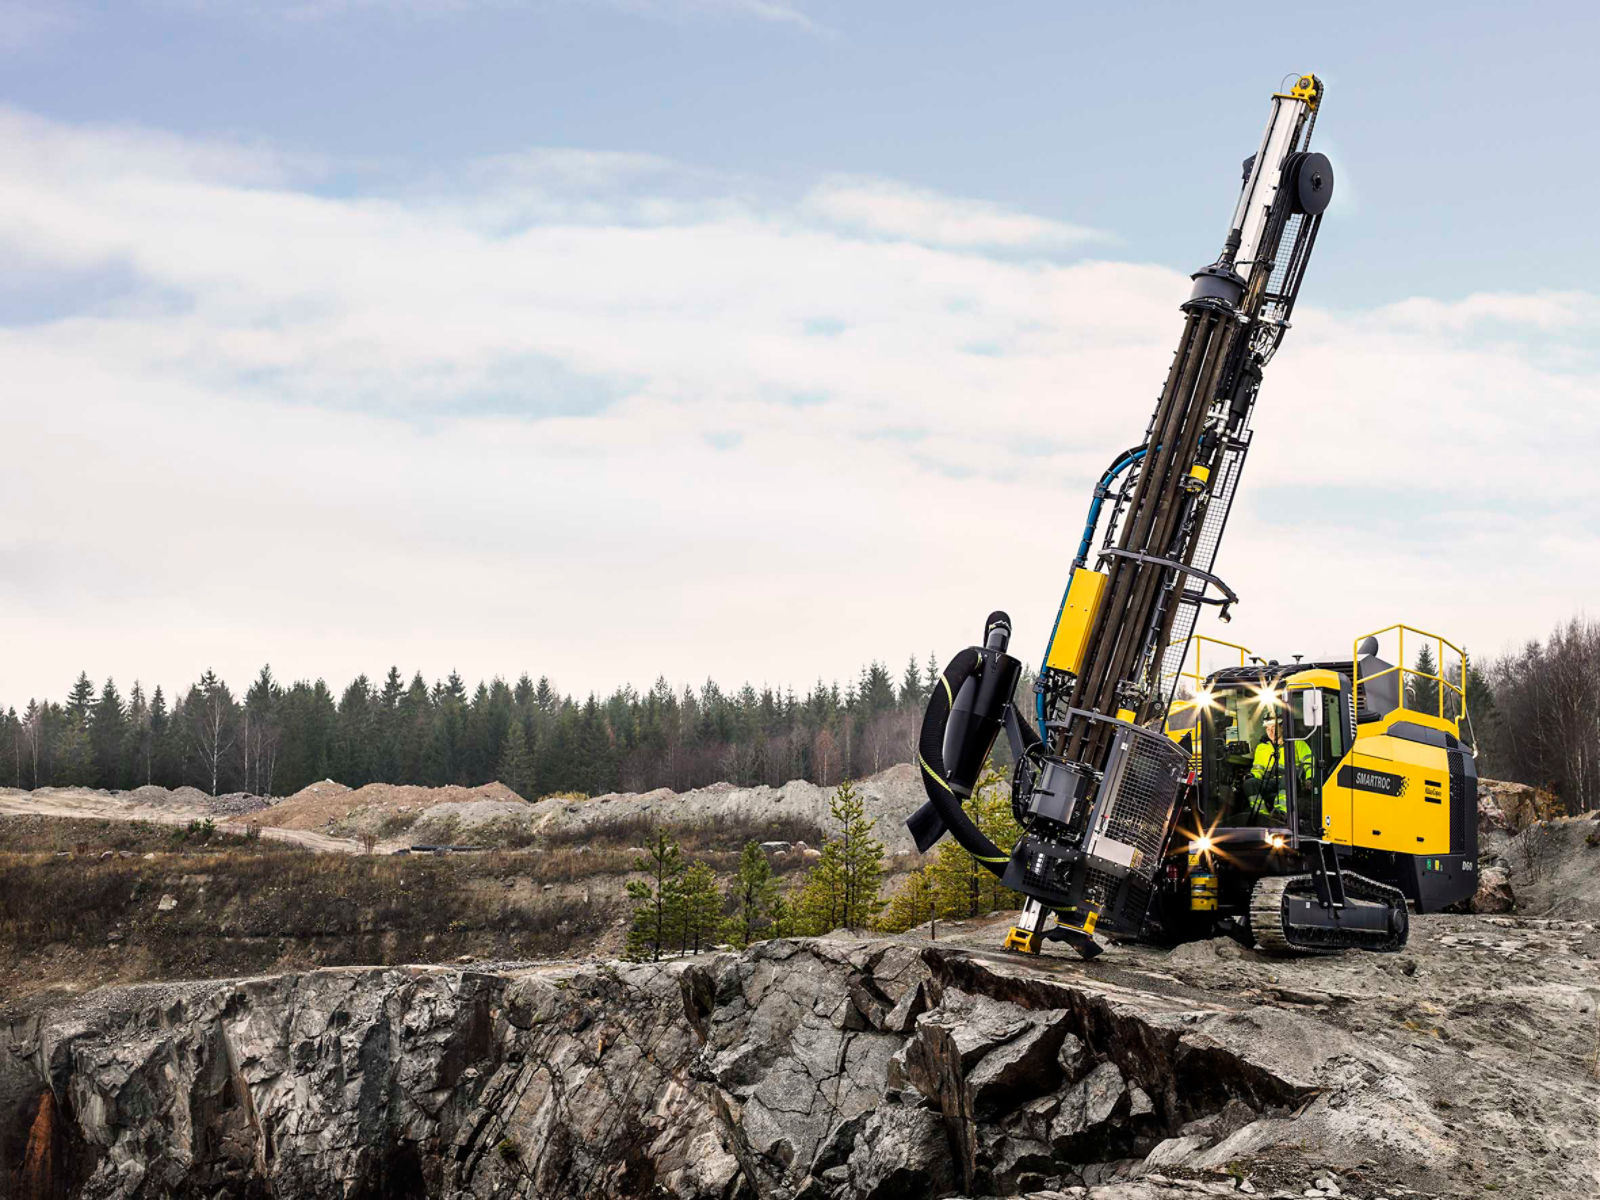 Atlas Copco is launching SmartROC D60, a surface drill rig for most types of surface drilling applications and tough conditions.